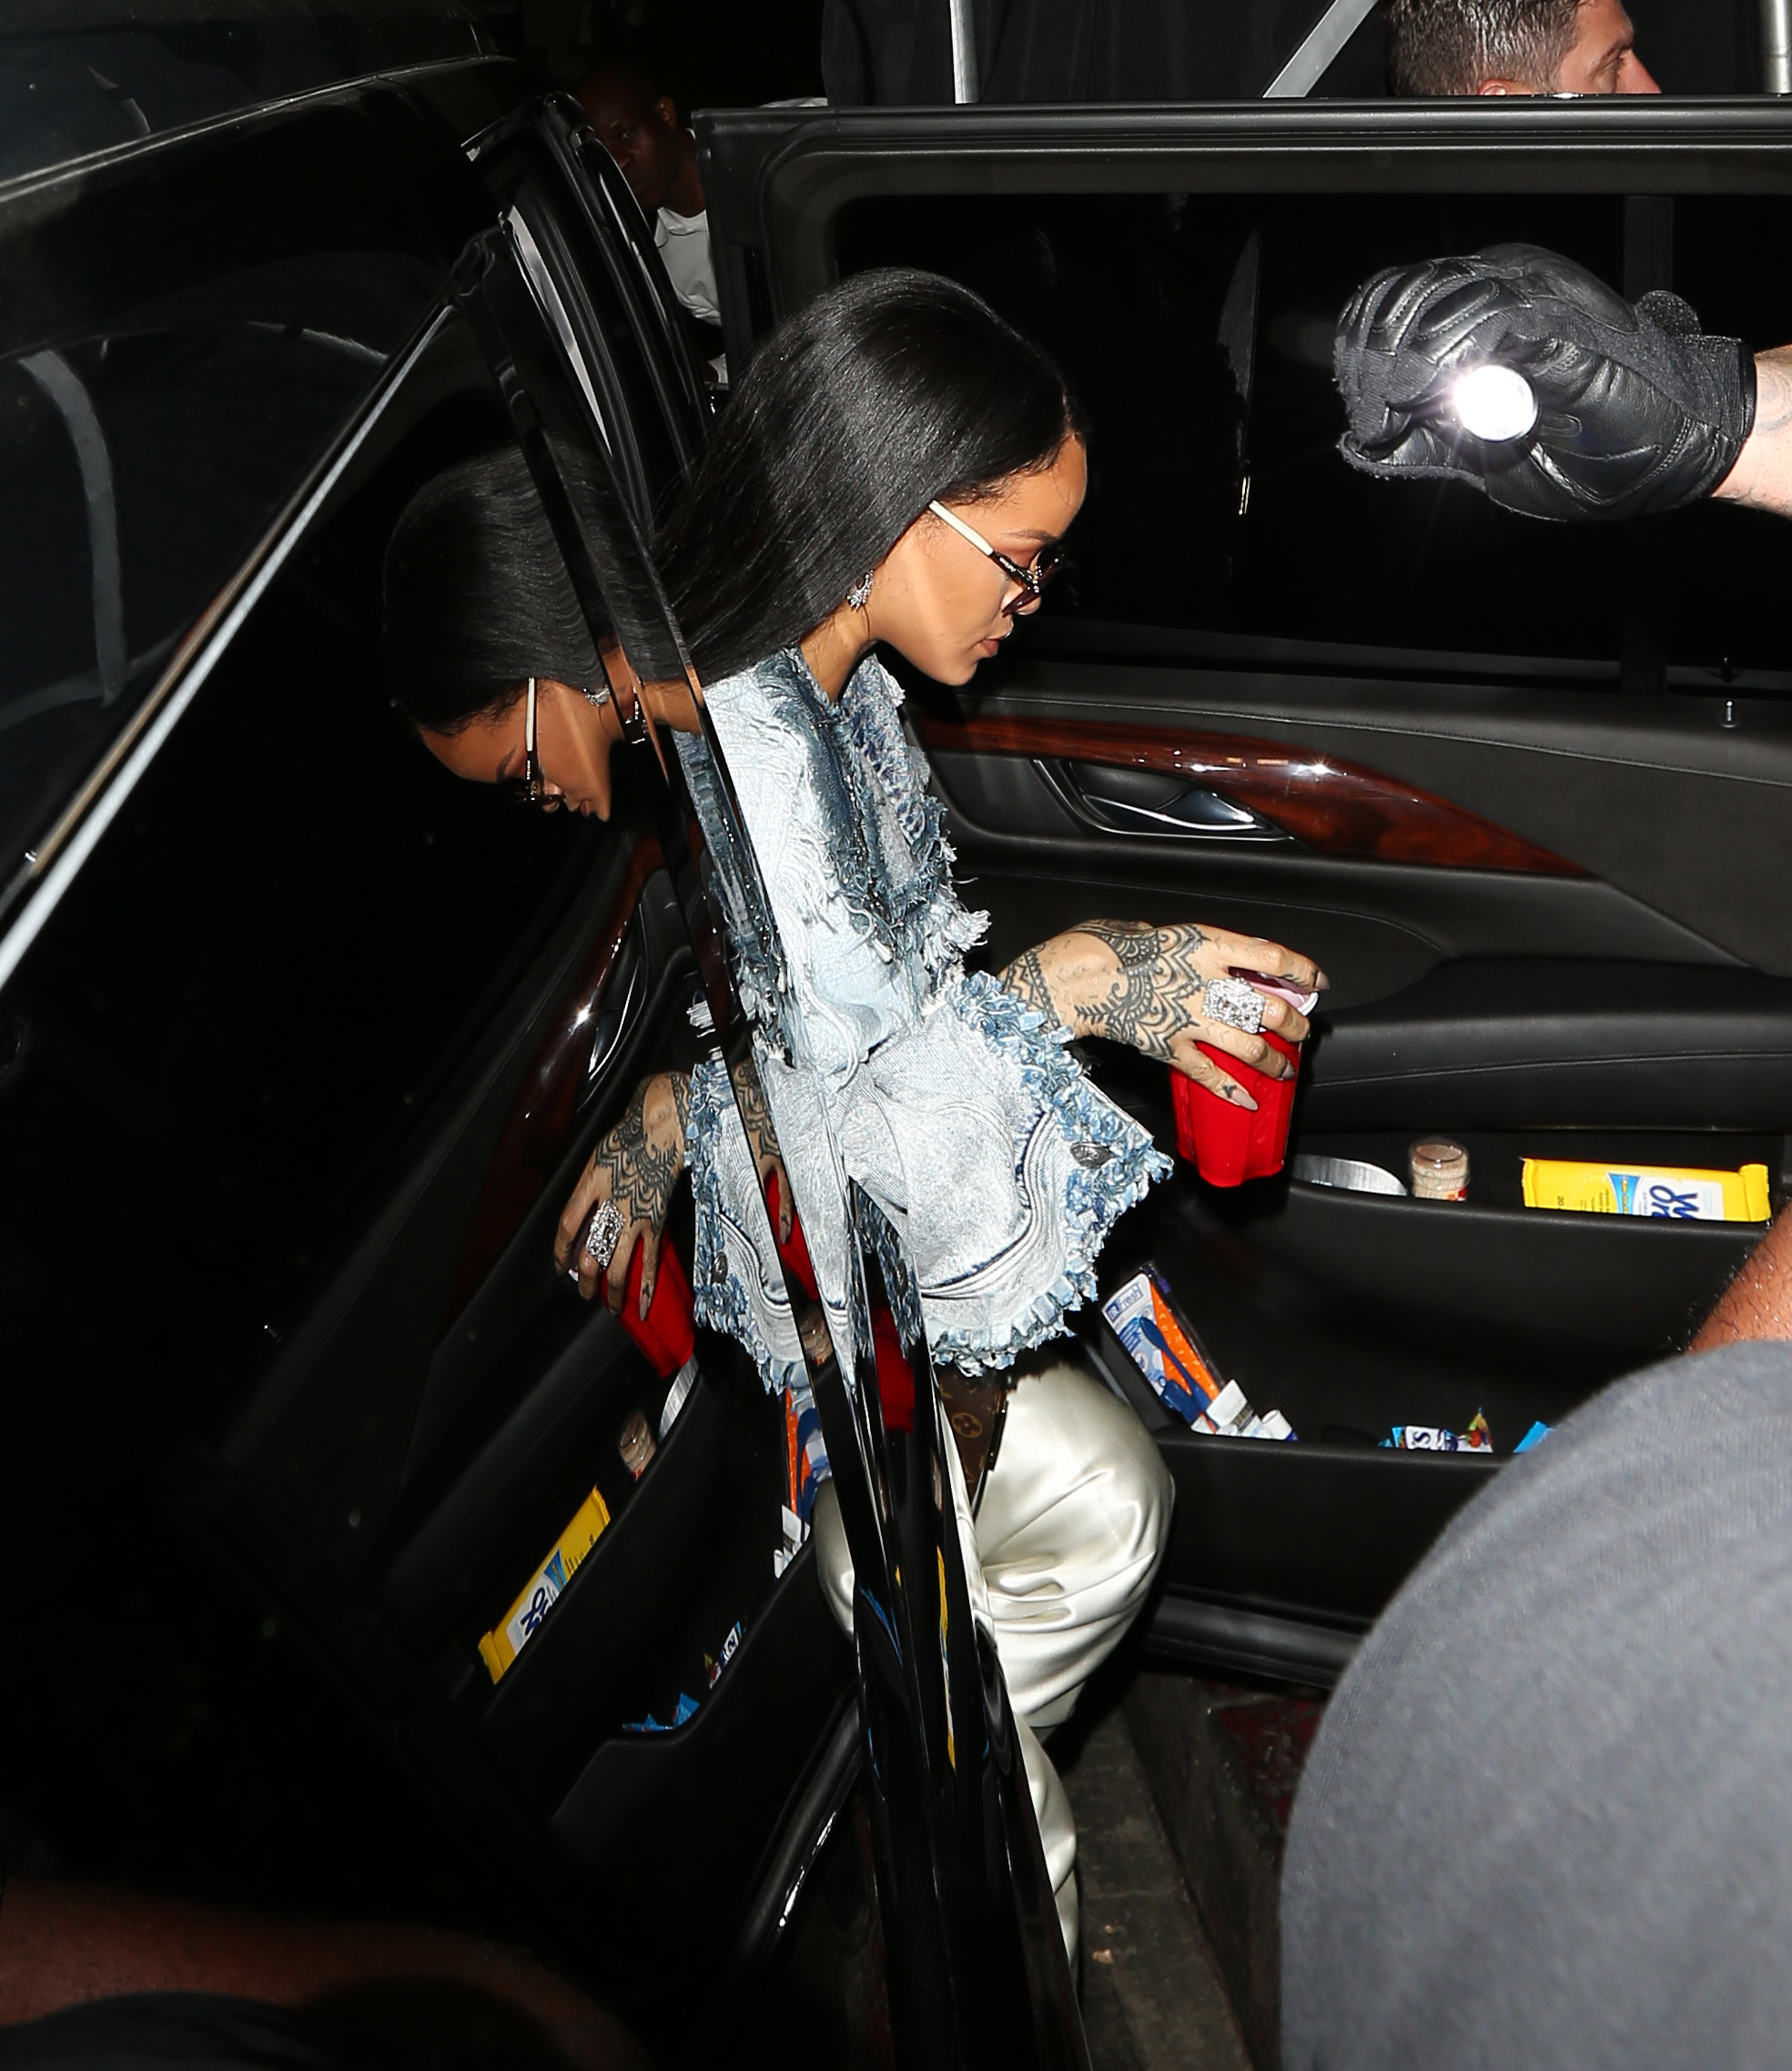 Drake and Rihanna arrive at The Nice Guy restaurant